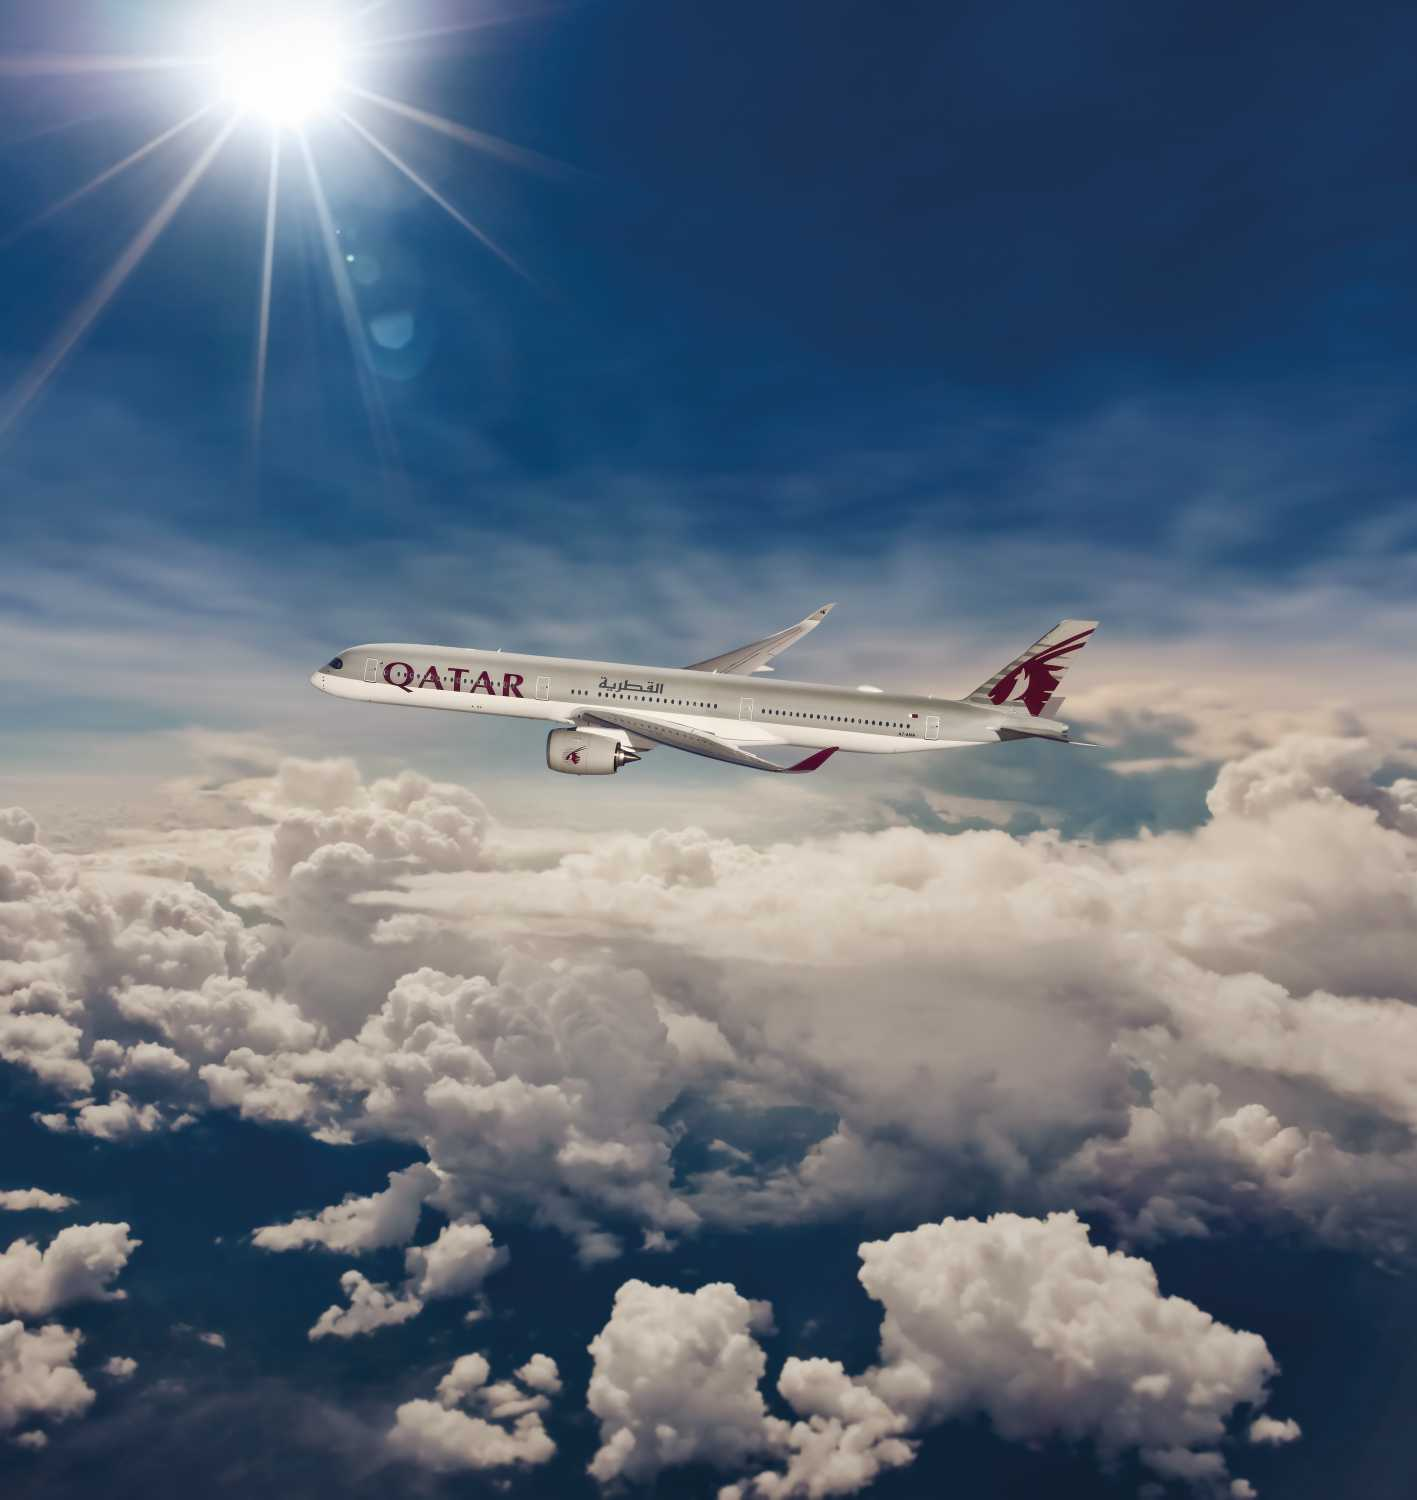 Qatar Airway plane flying above clouds